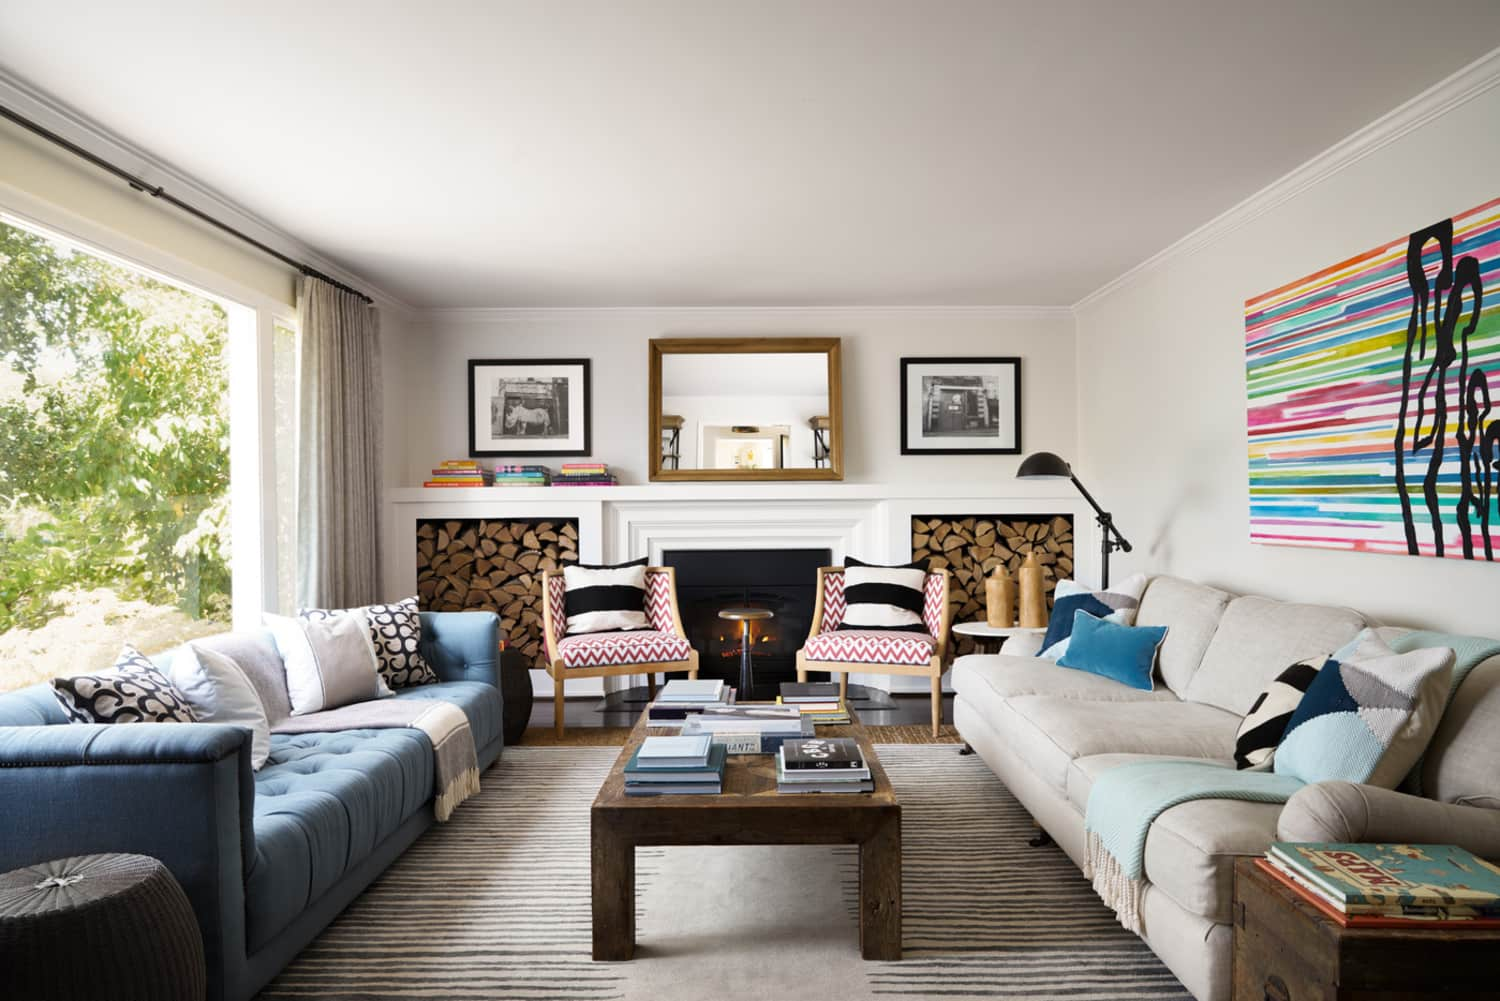 High Quality Battle Of The Sofa Arrangements: Can You Guess Which Saves Space?